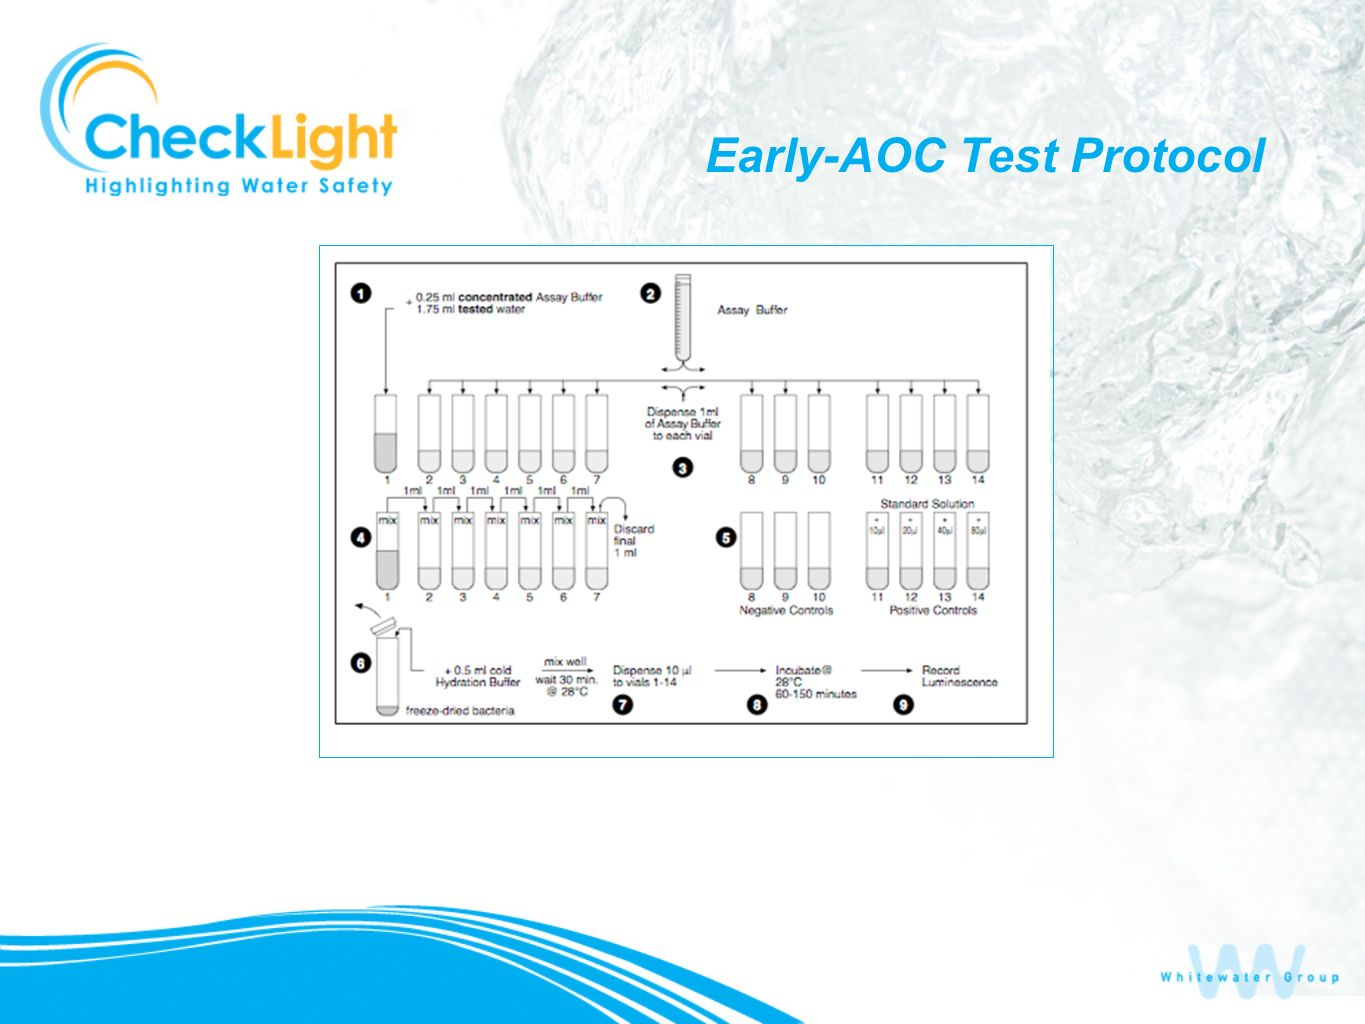 Early-AOC Test Protocol